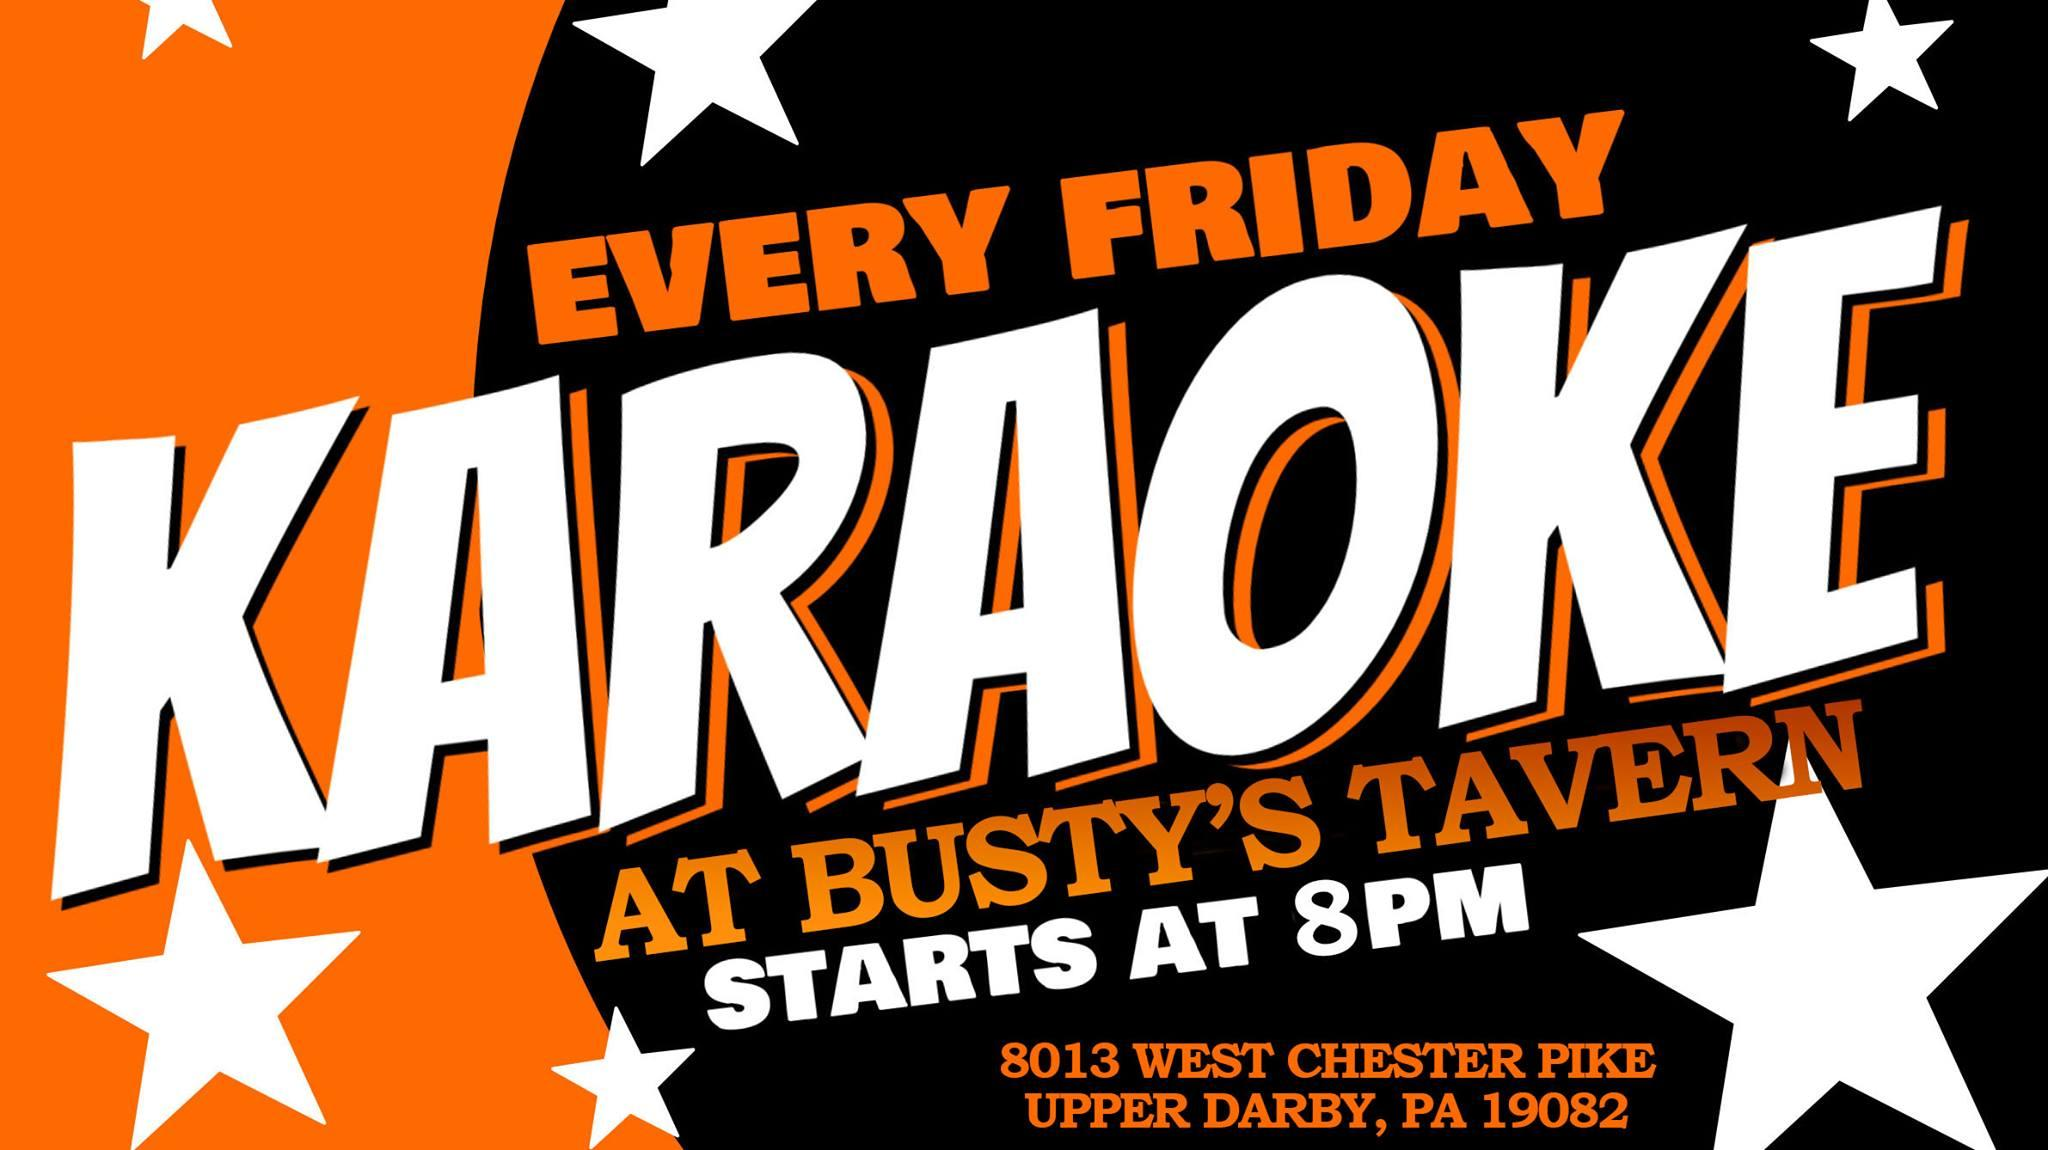 Friday Karaoke at Busty's Tavern (Upper Darby | Delaware County, PA)